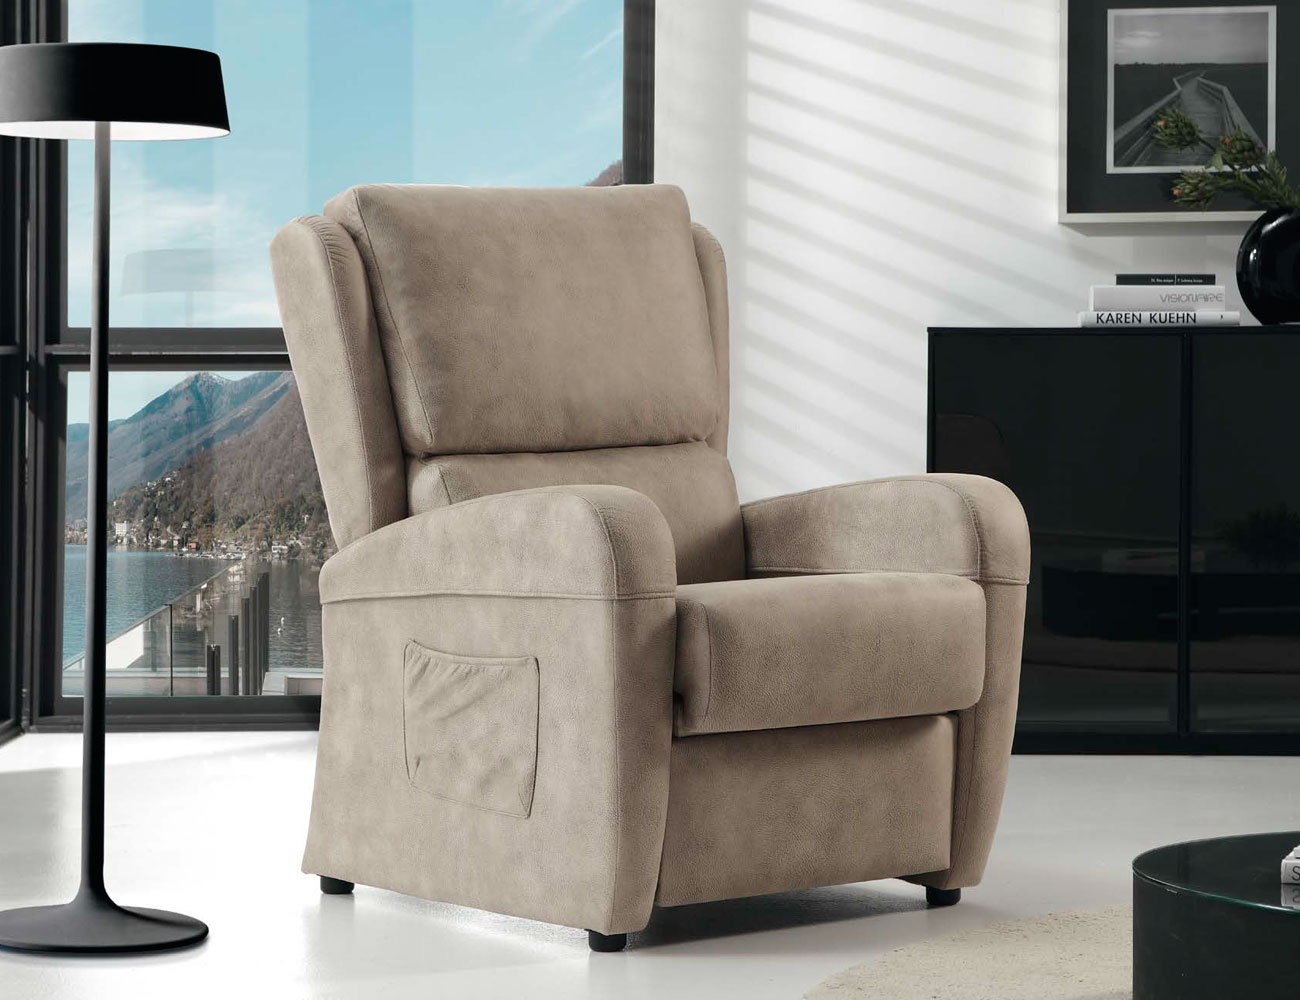 Sillon relax manual jana8